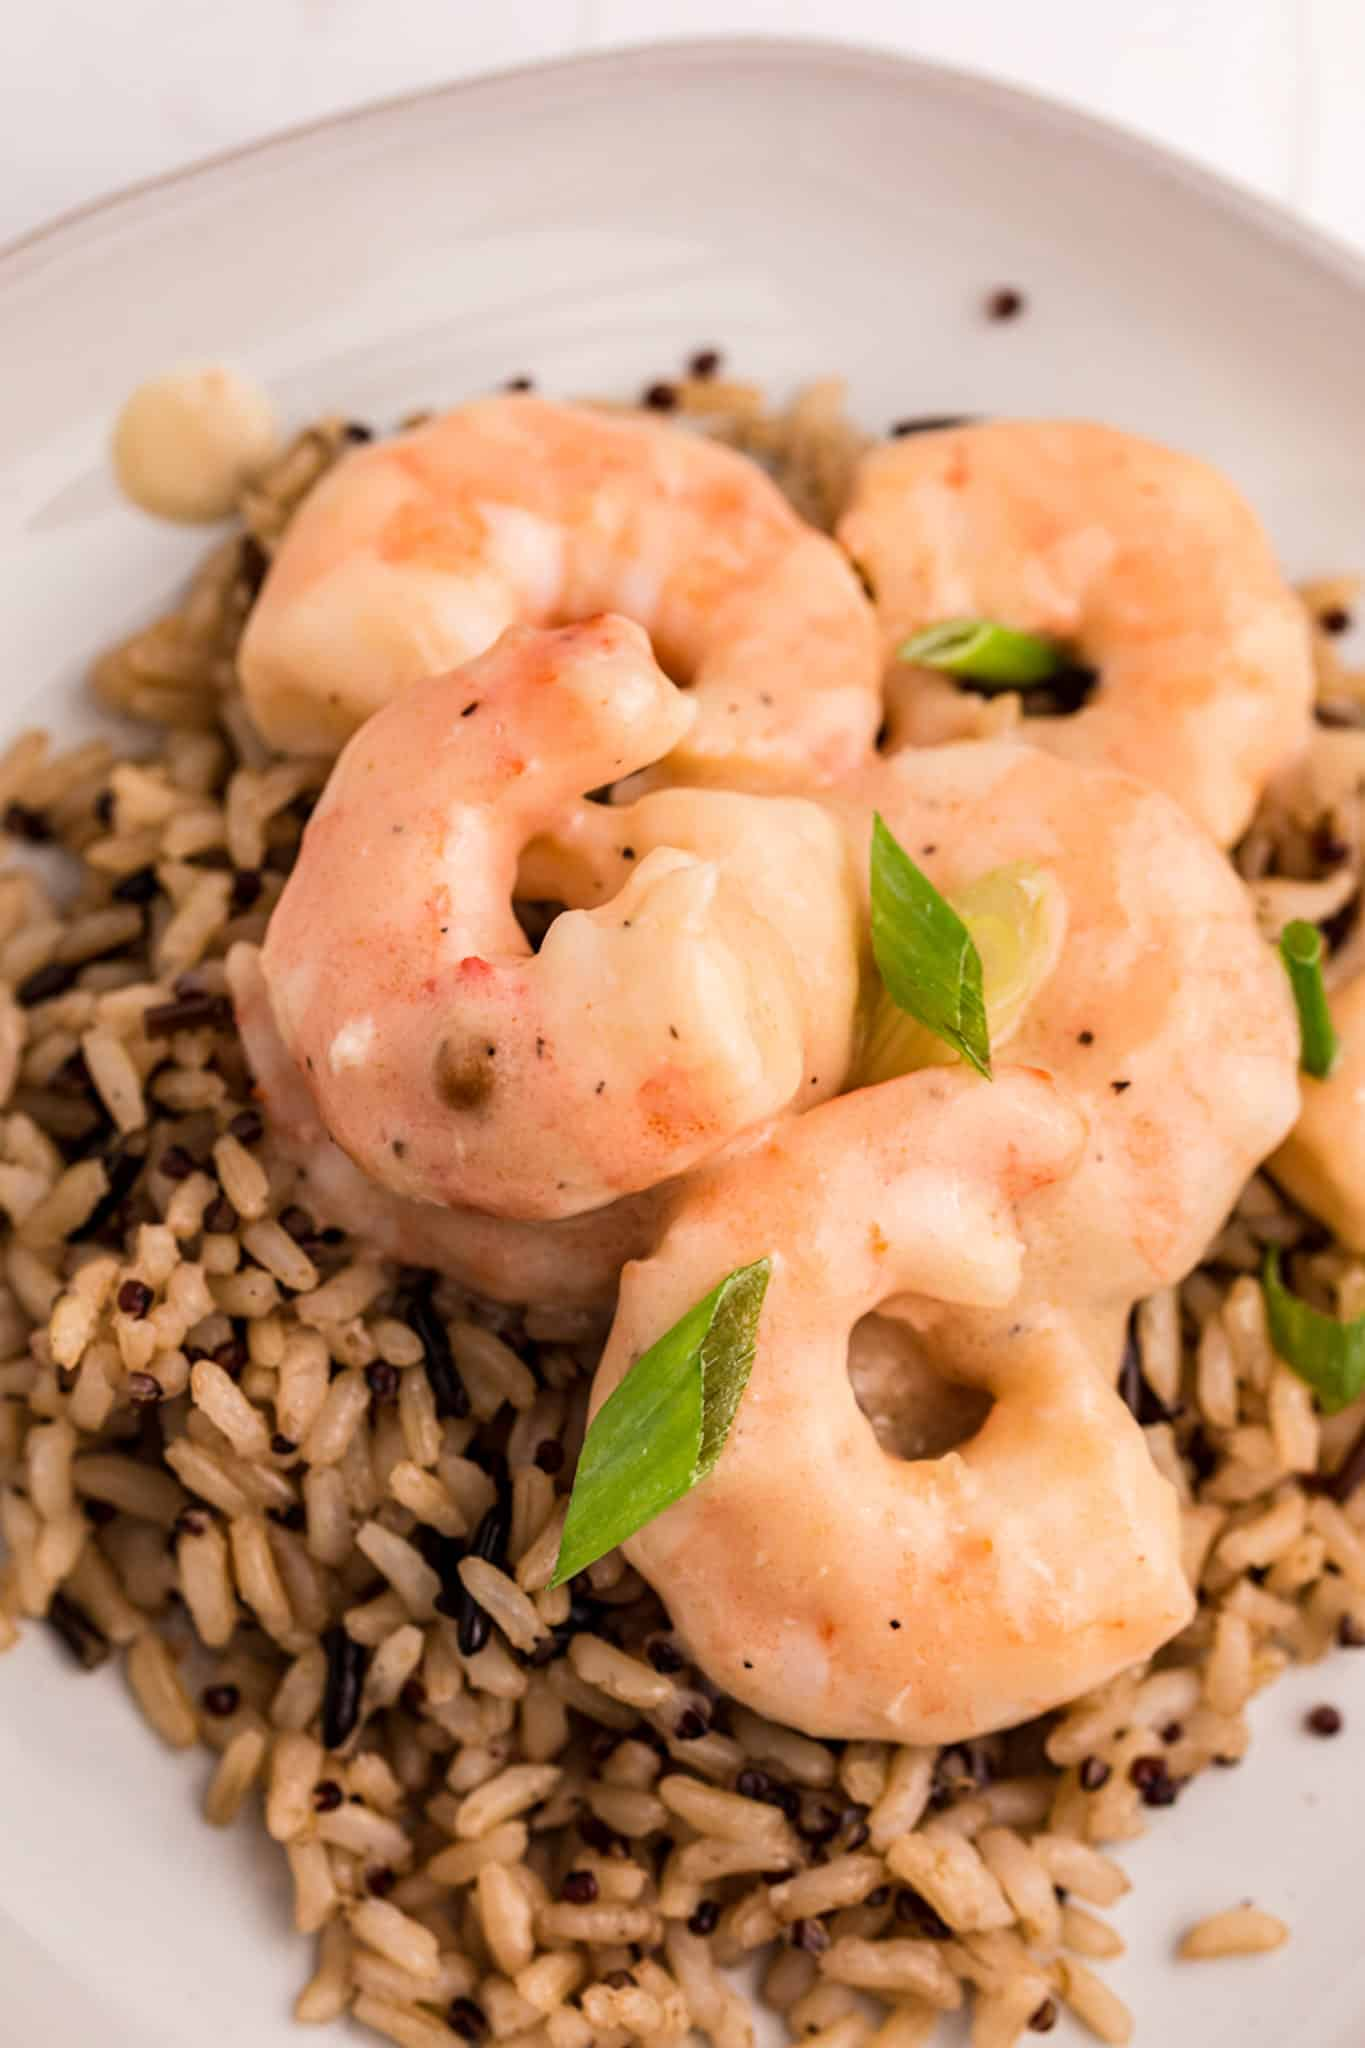 creamy shrimp texture with green onions on top